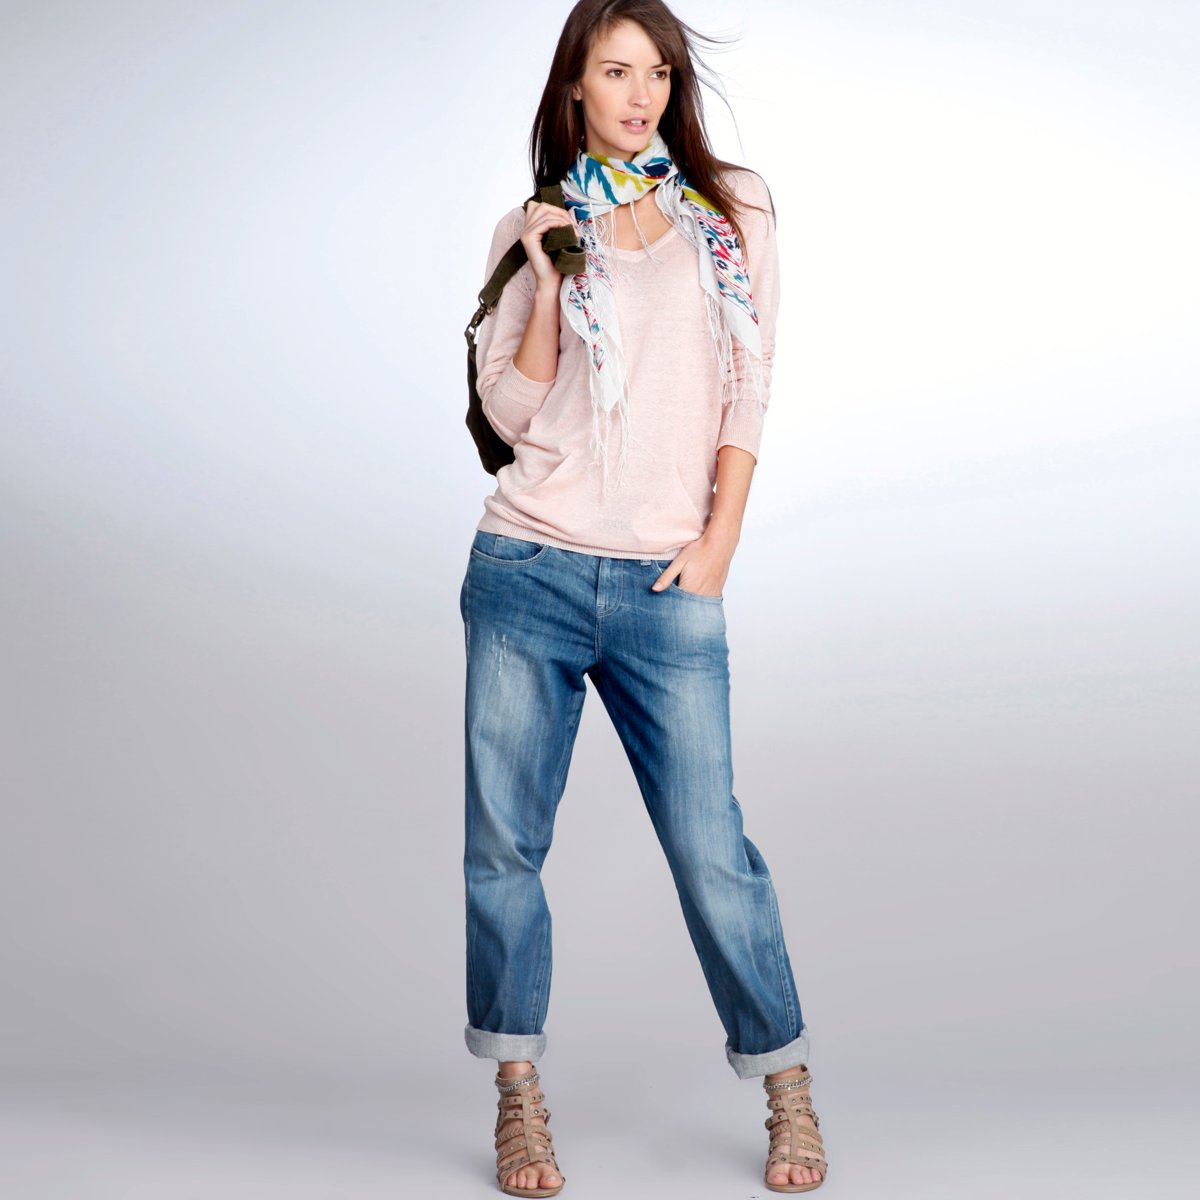 The model in Boyfriend Jeans